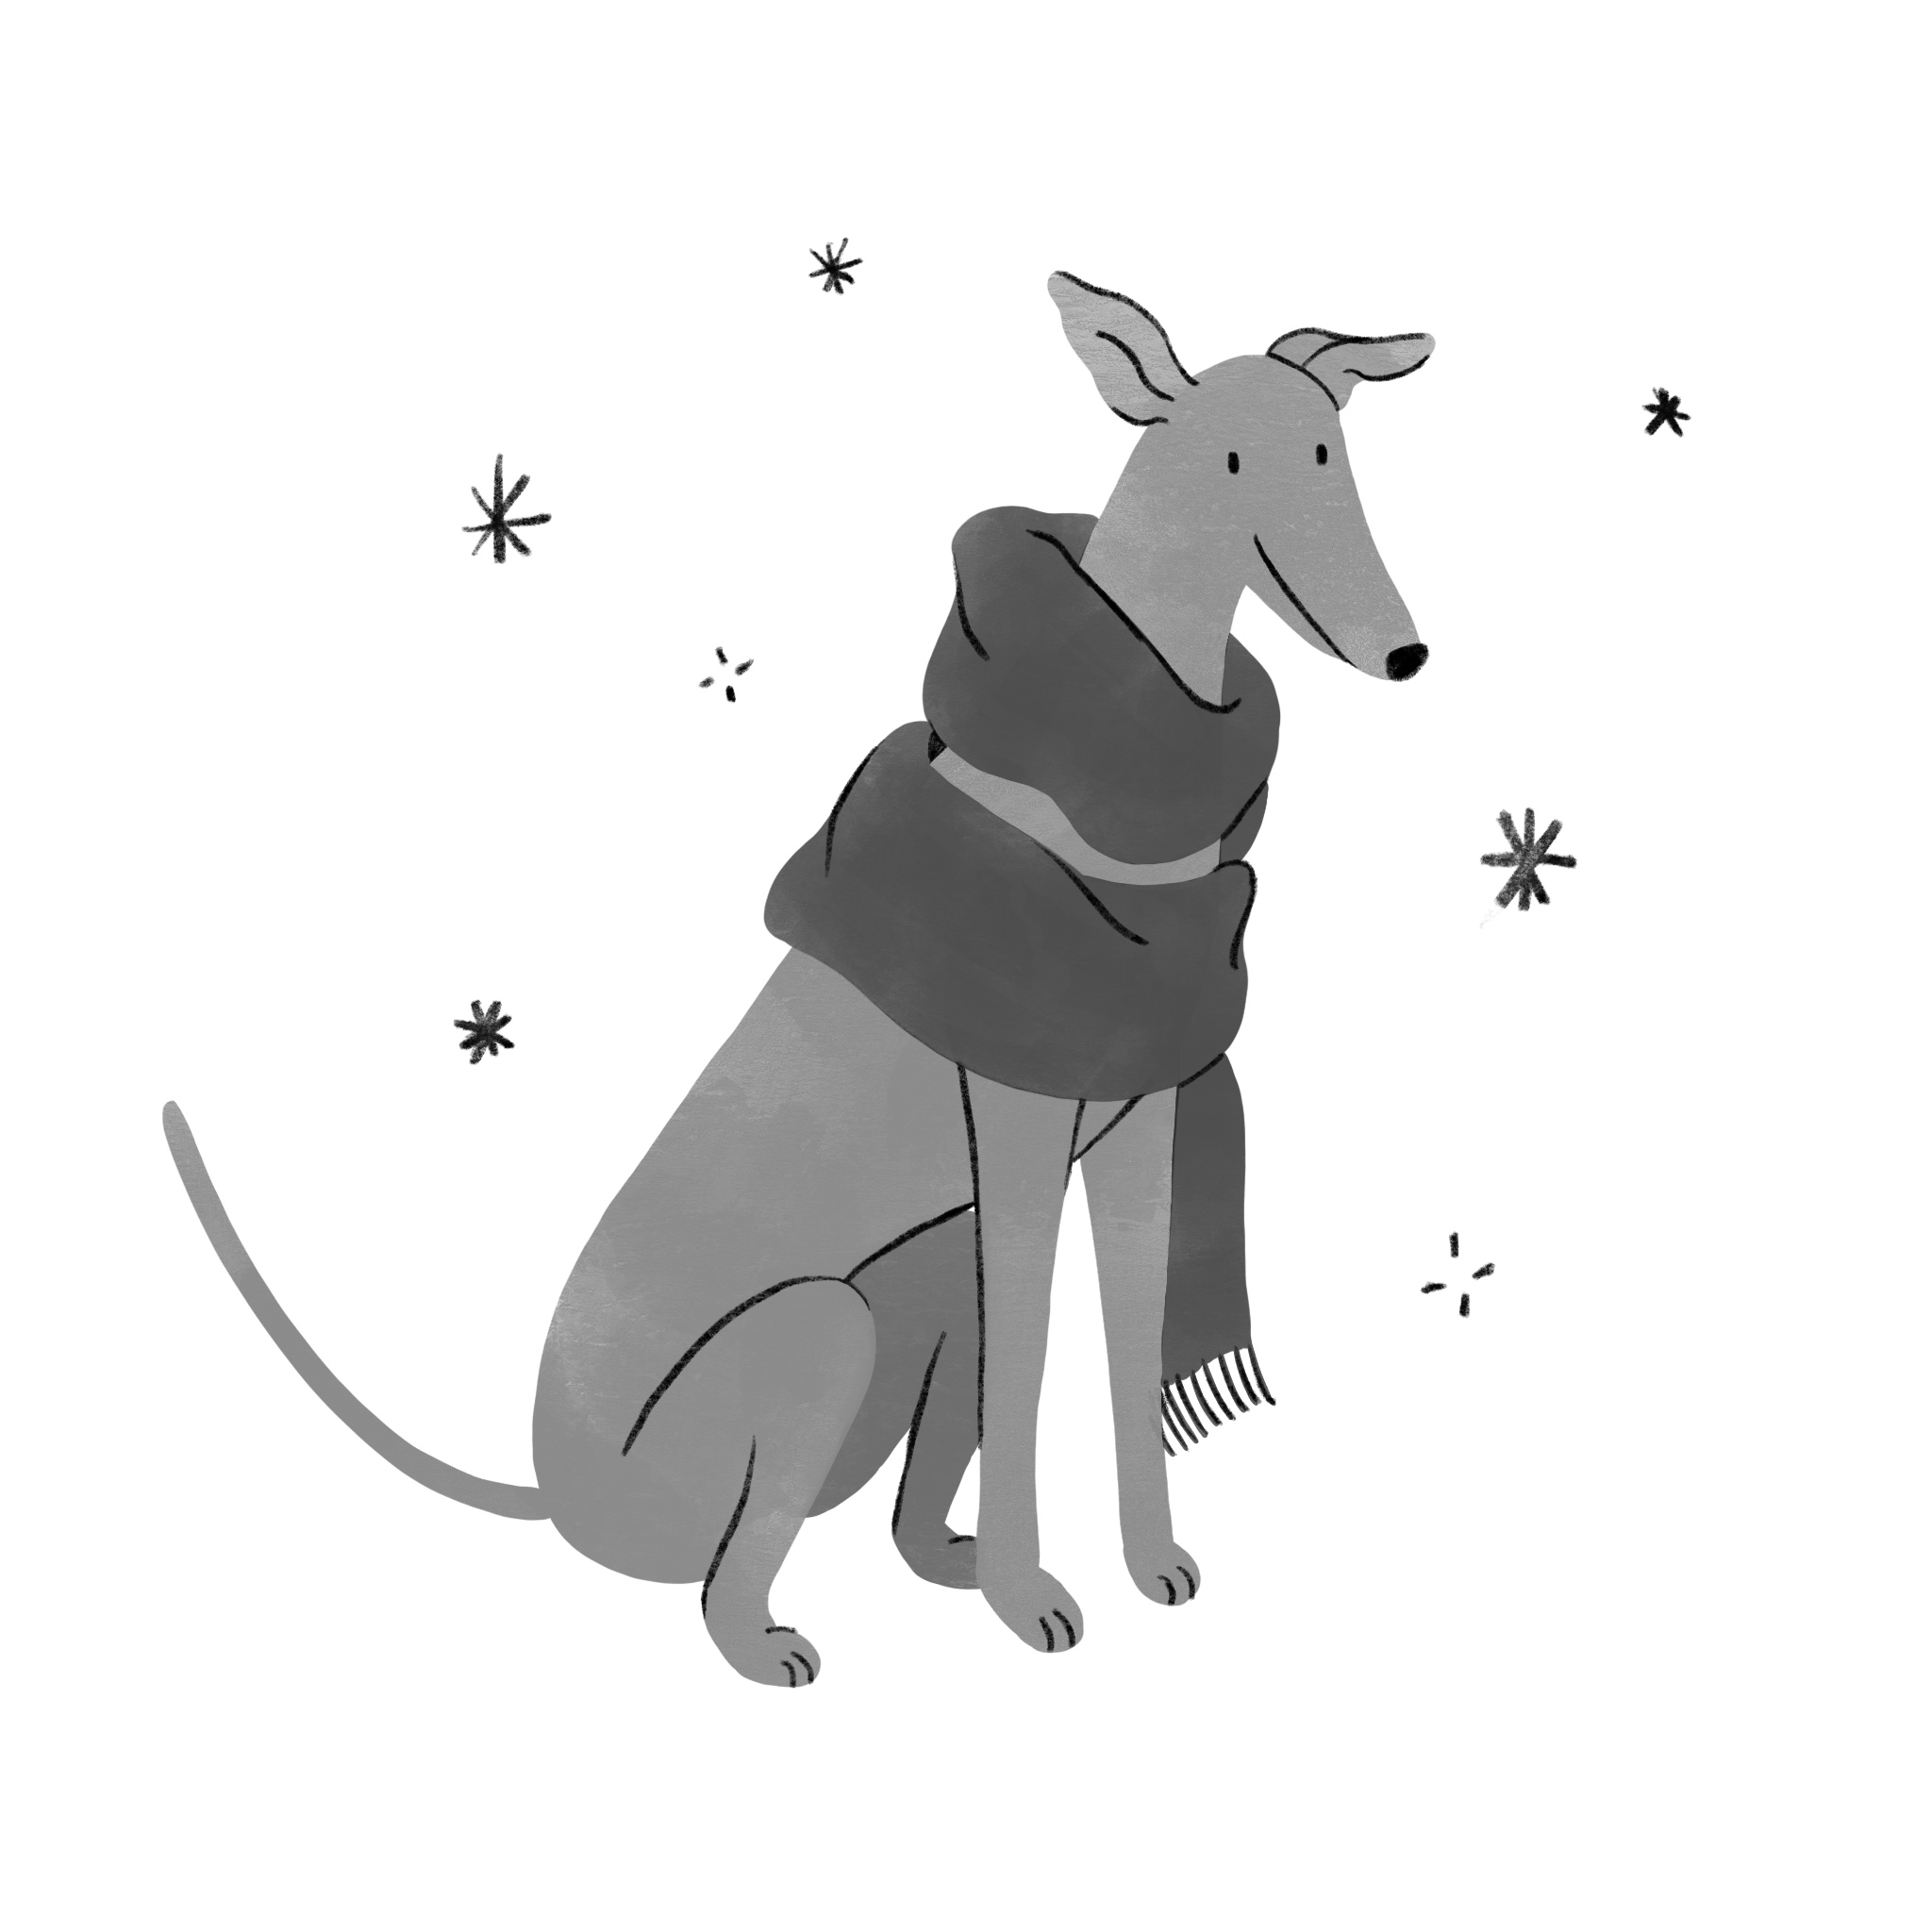 An illustrated greyhound wearing a big winter scarf